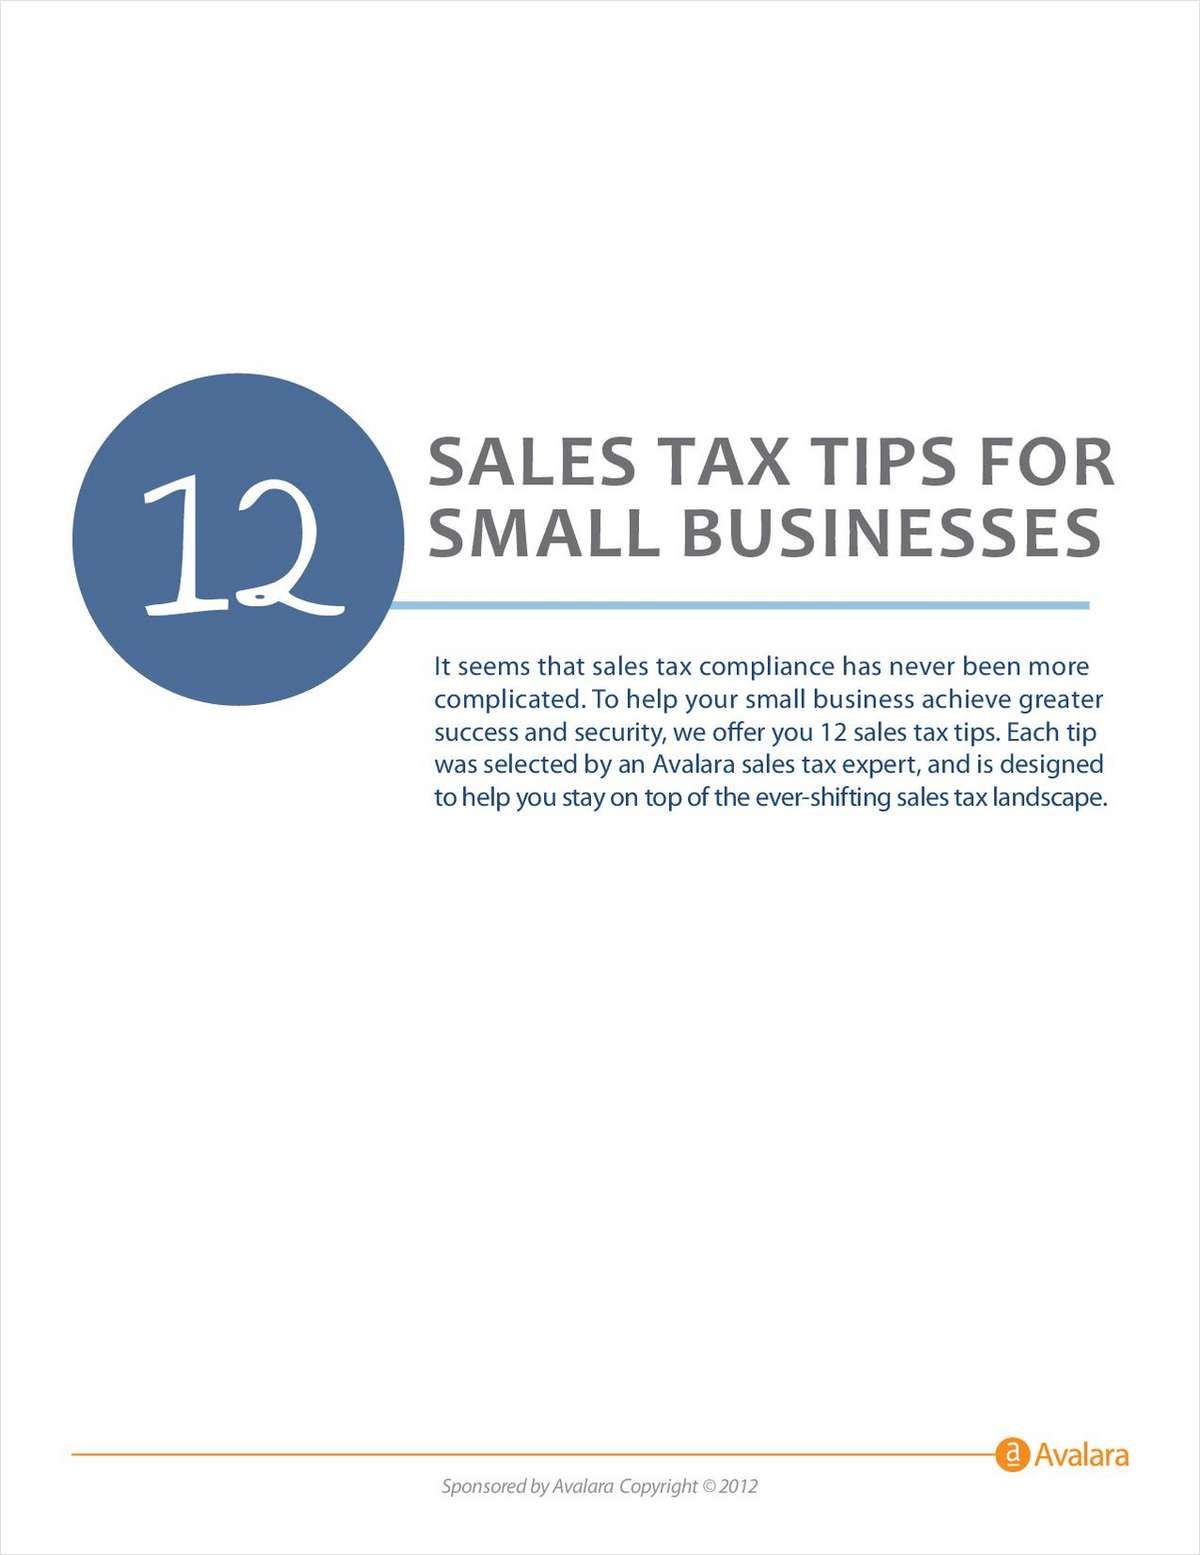 12 Sales Tax Tips For Small Businesses